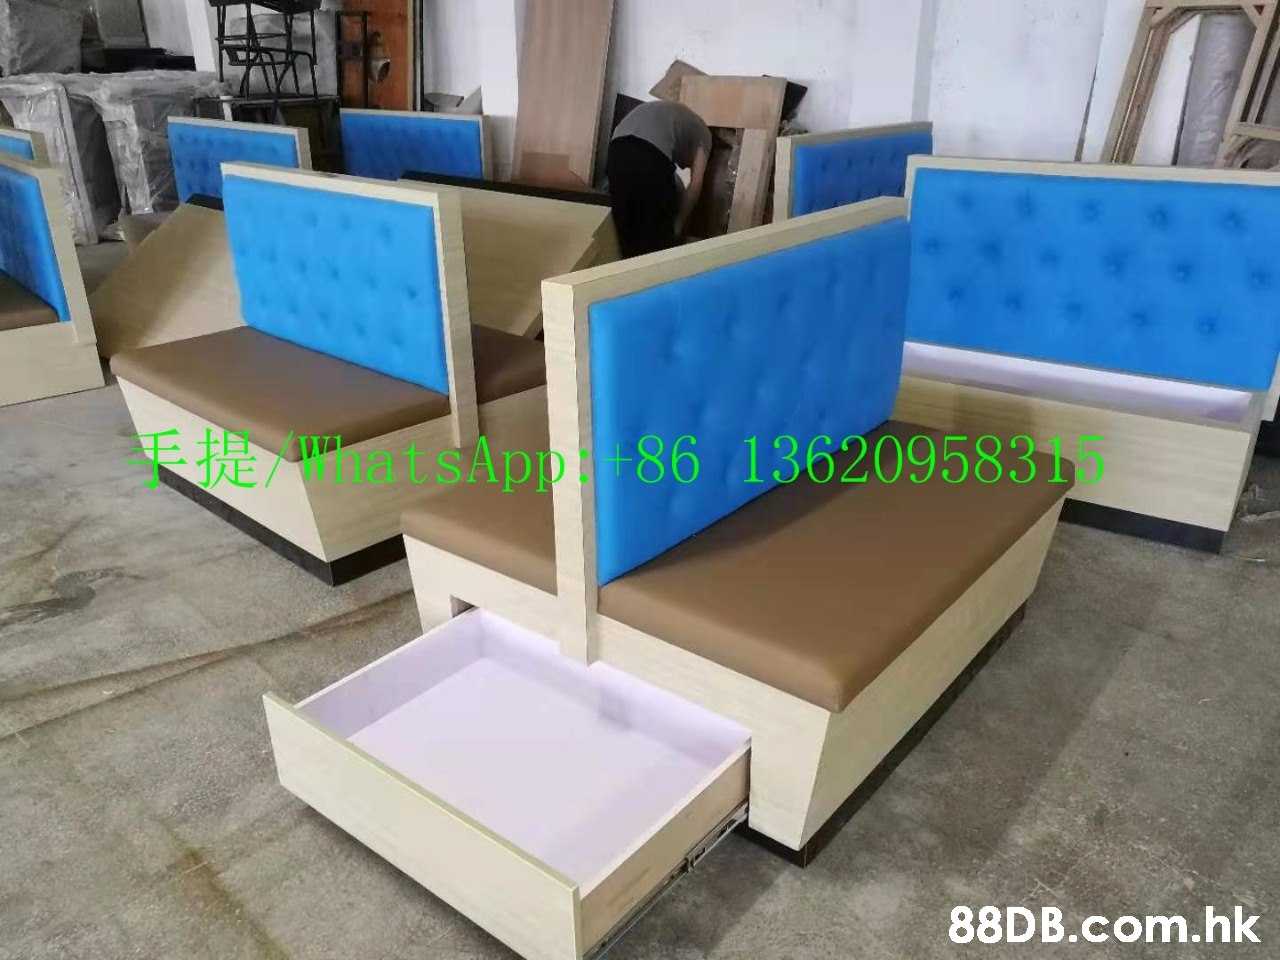 E atsApp 86 136209583 .hk  Product,Furniture,Plastic,Table,Room